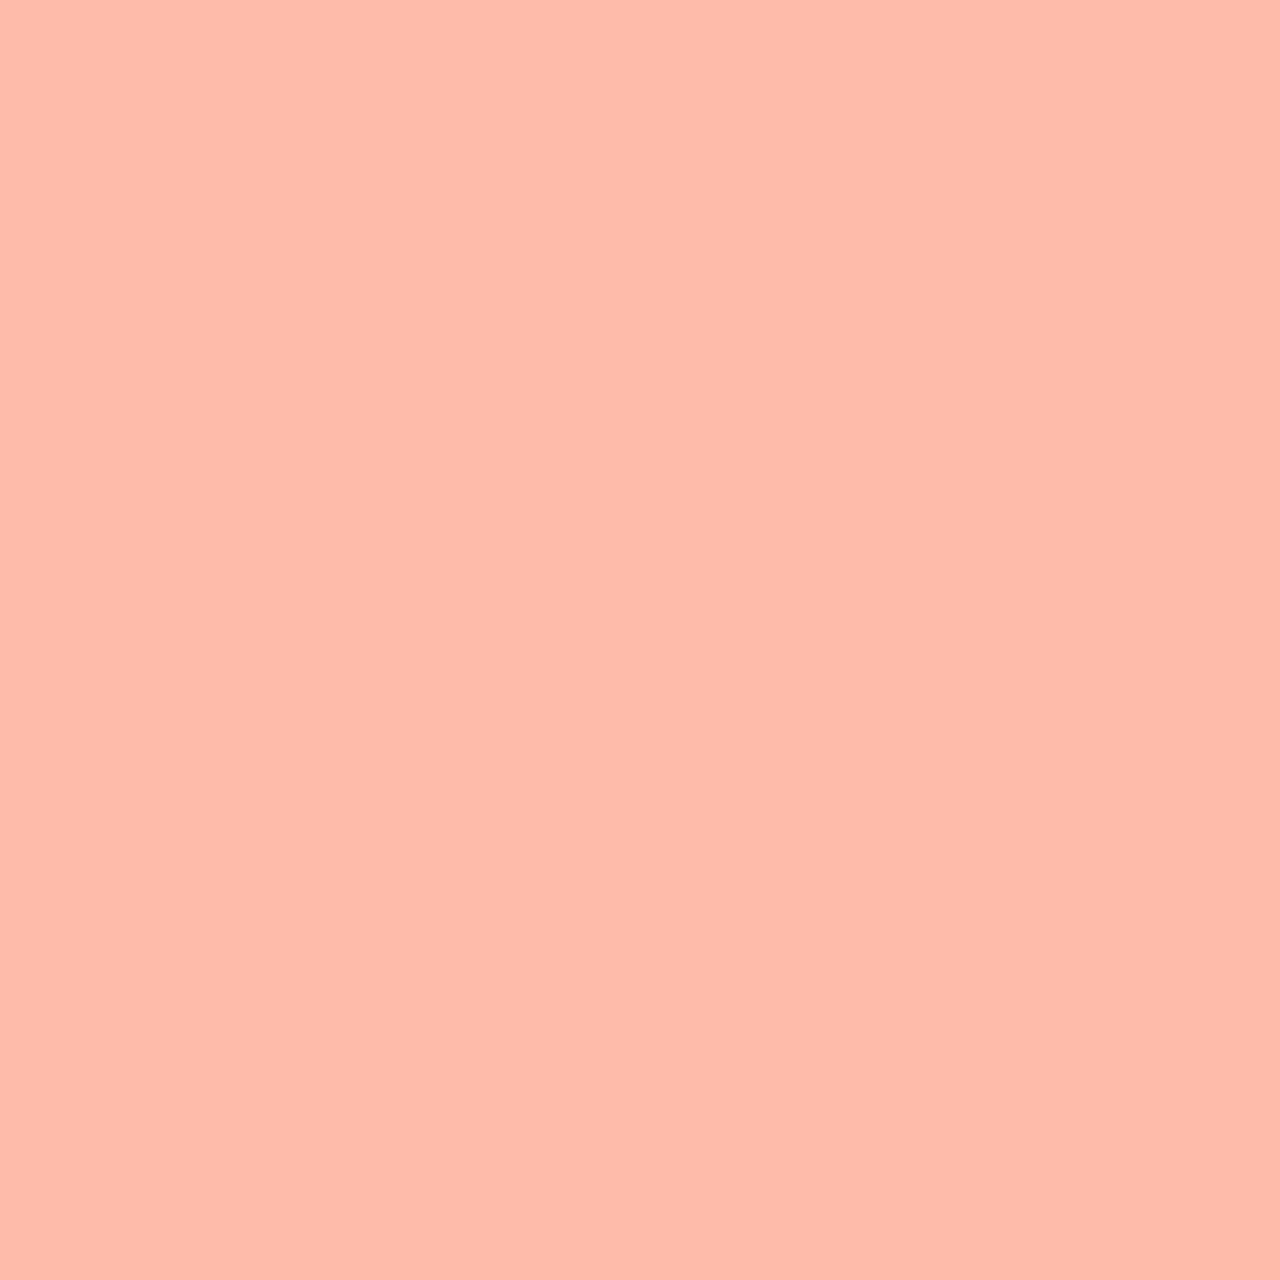 """#0304 Rosco Gels Roscolux Pale Apricot, 20x24"""""""